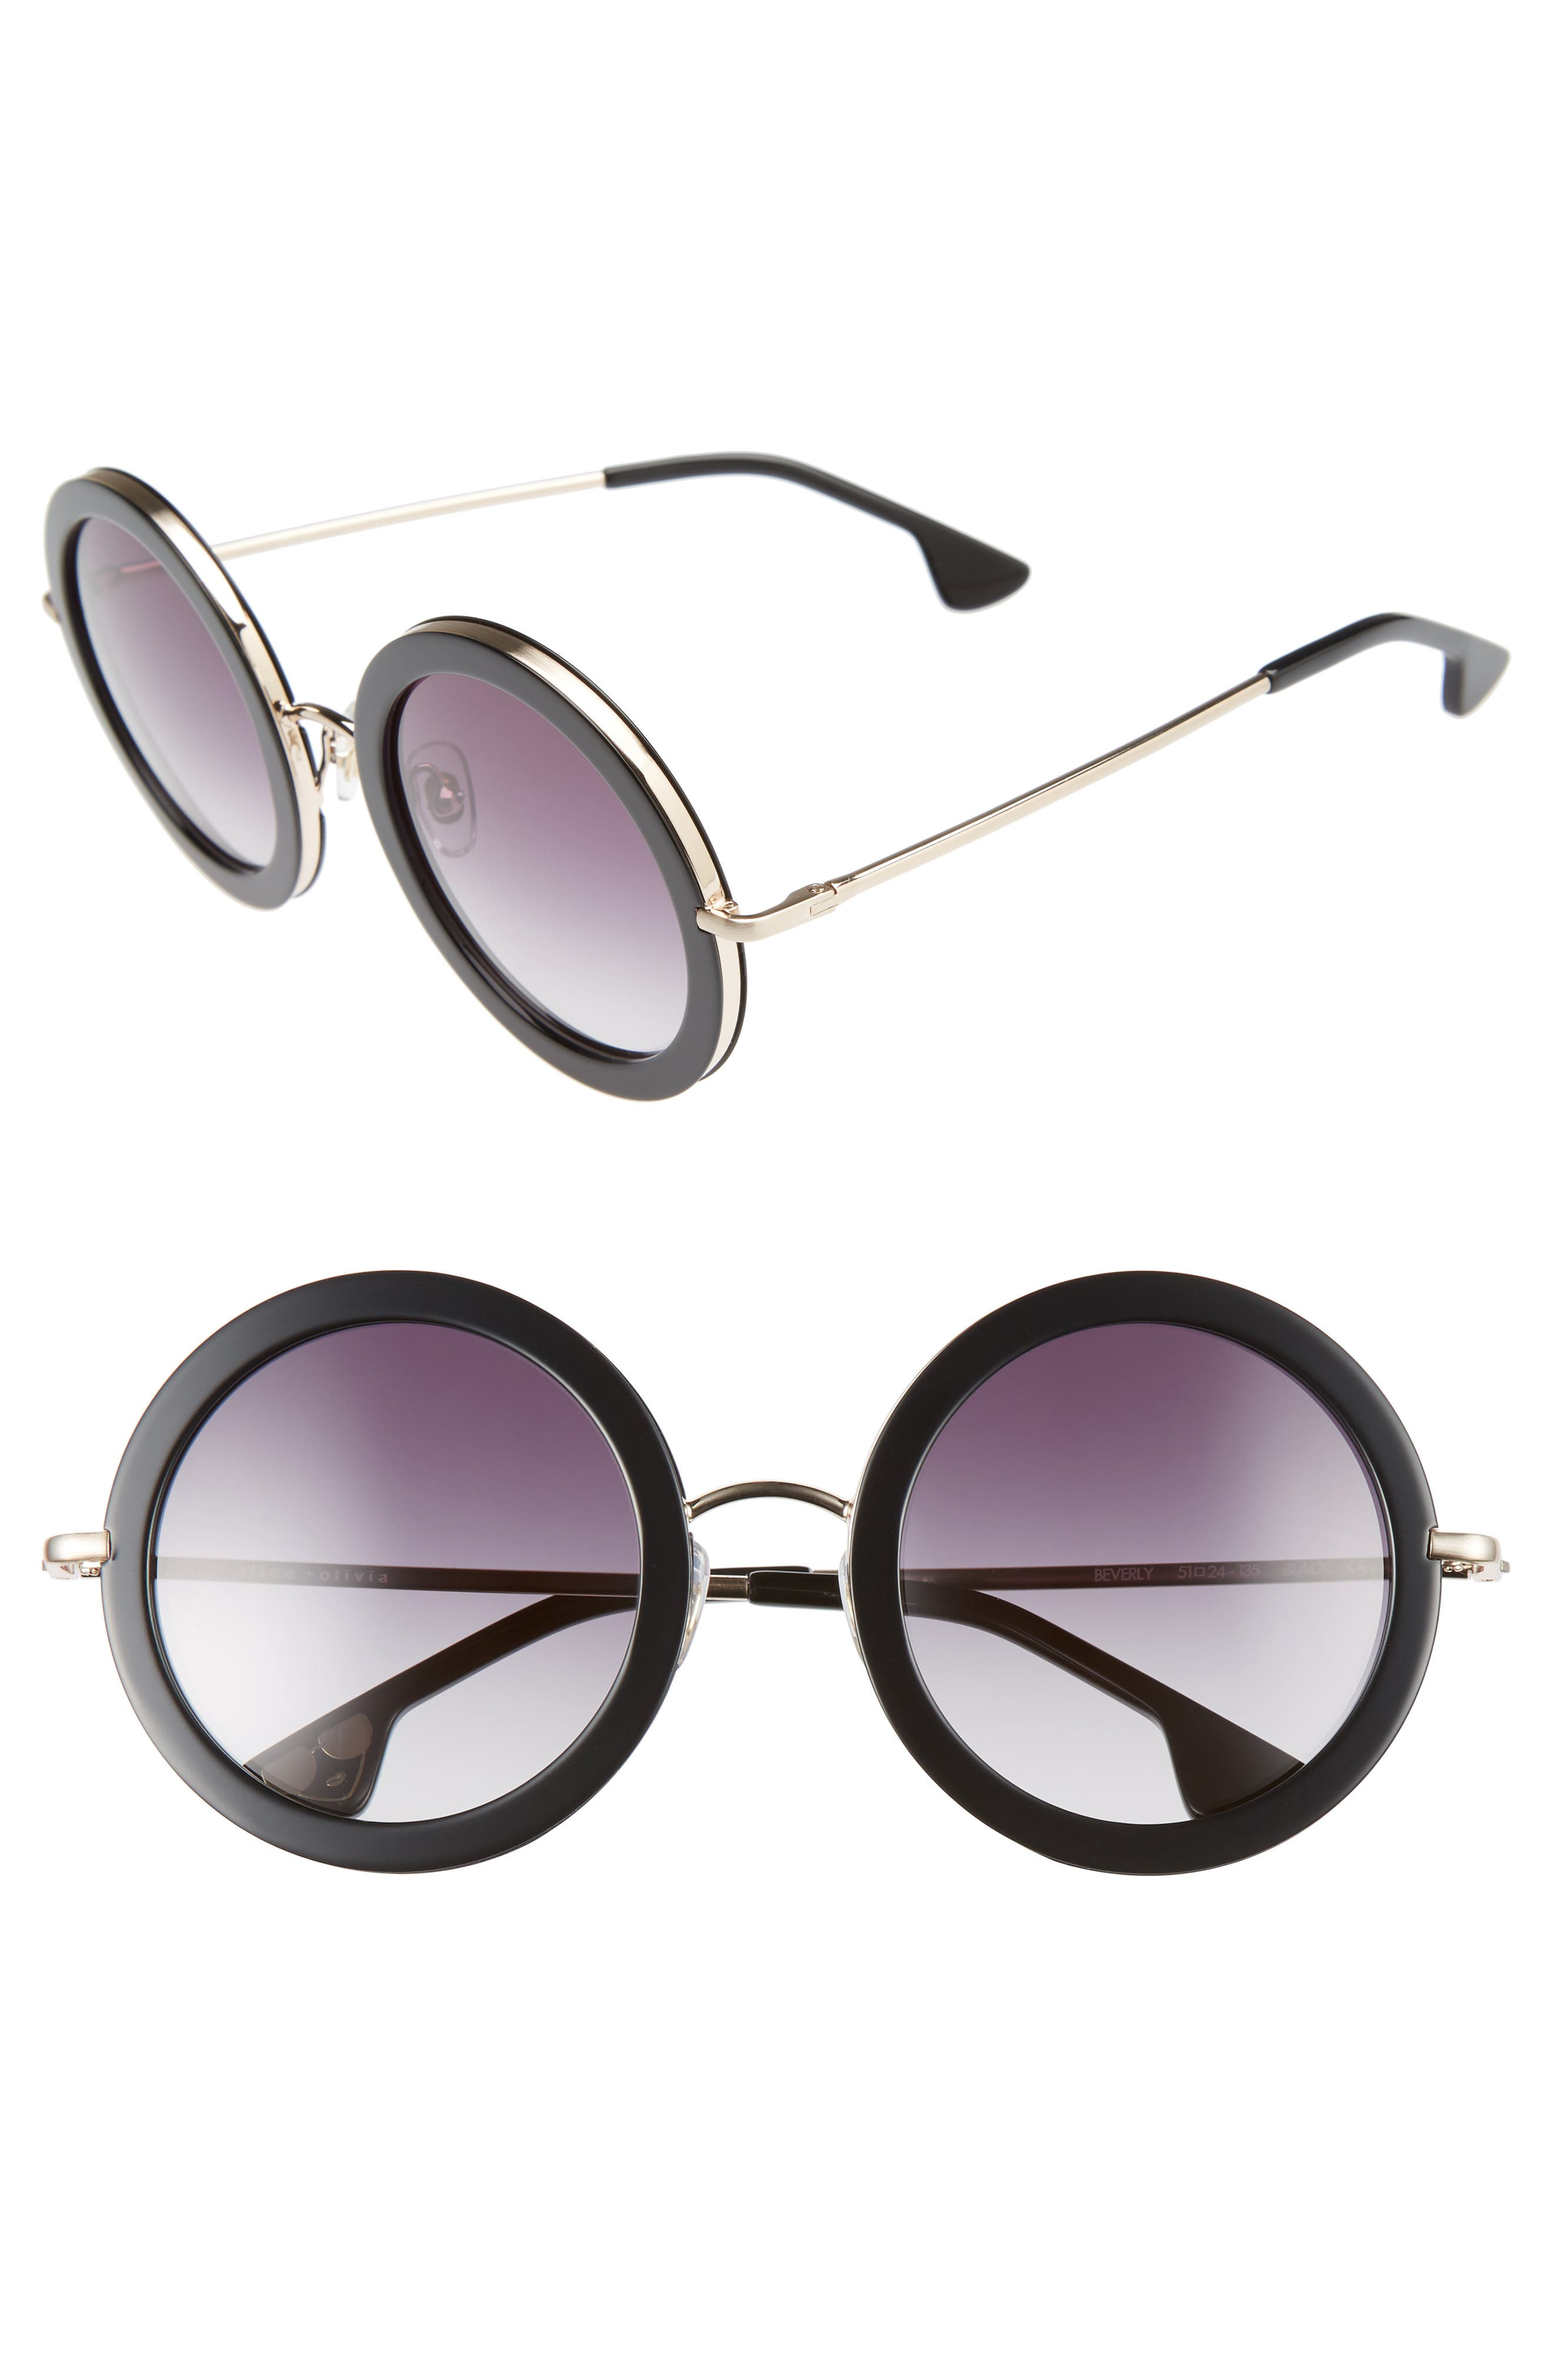 Beverly 51mm Special Fit Round Sunglasses,                             Main thumbnail 1, color,                             001